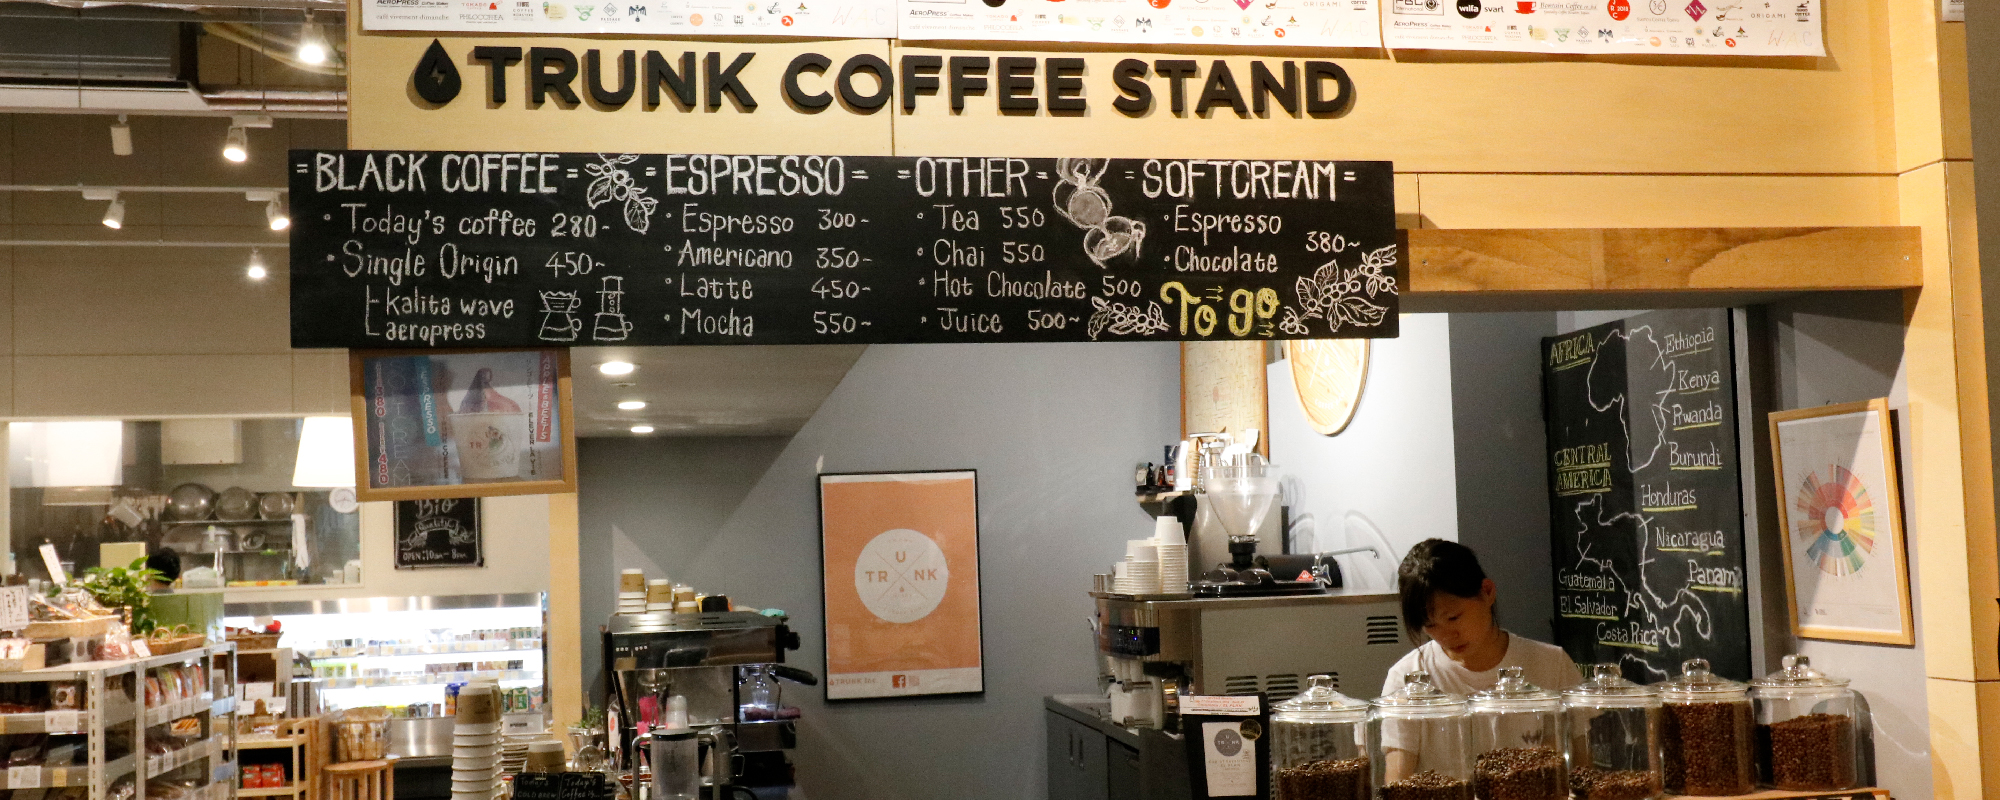 TRUNK COFFEE & STAND